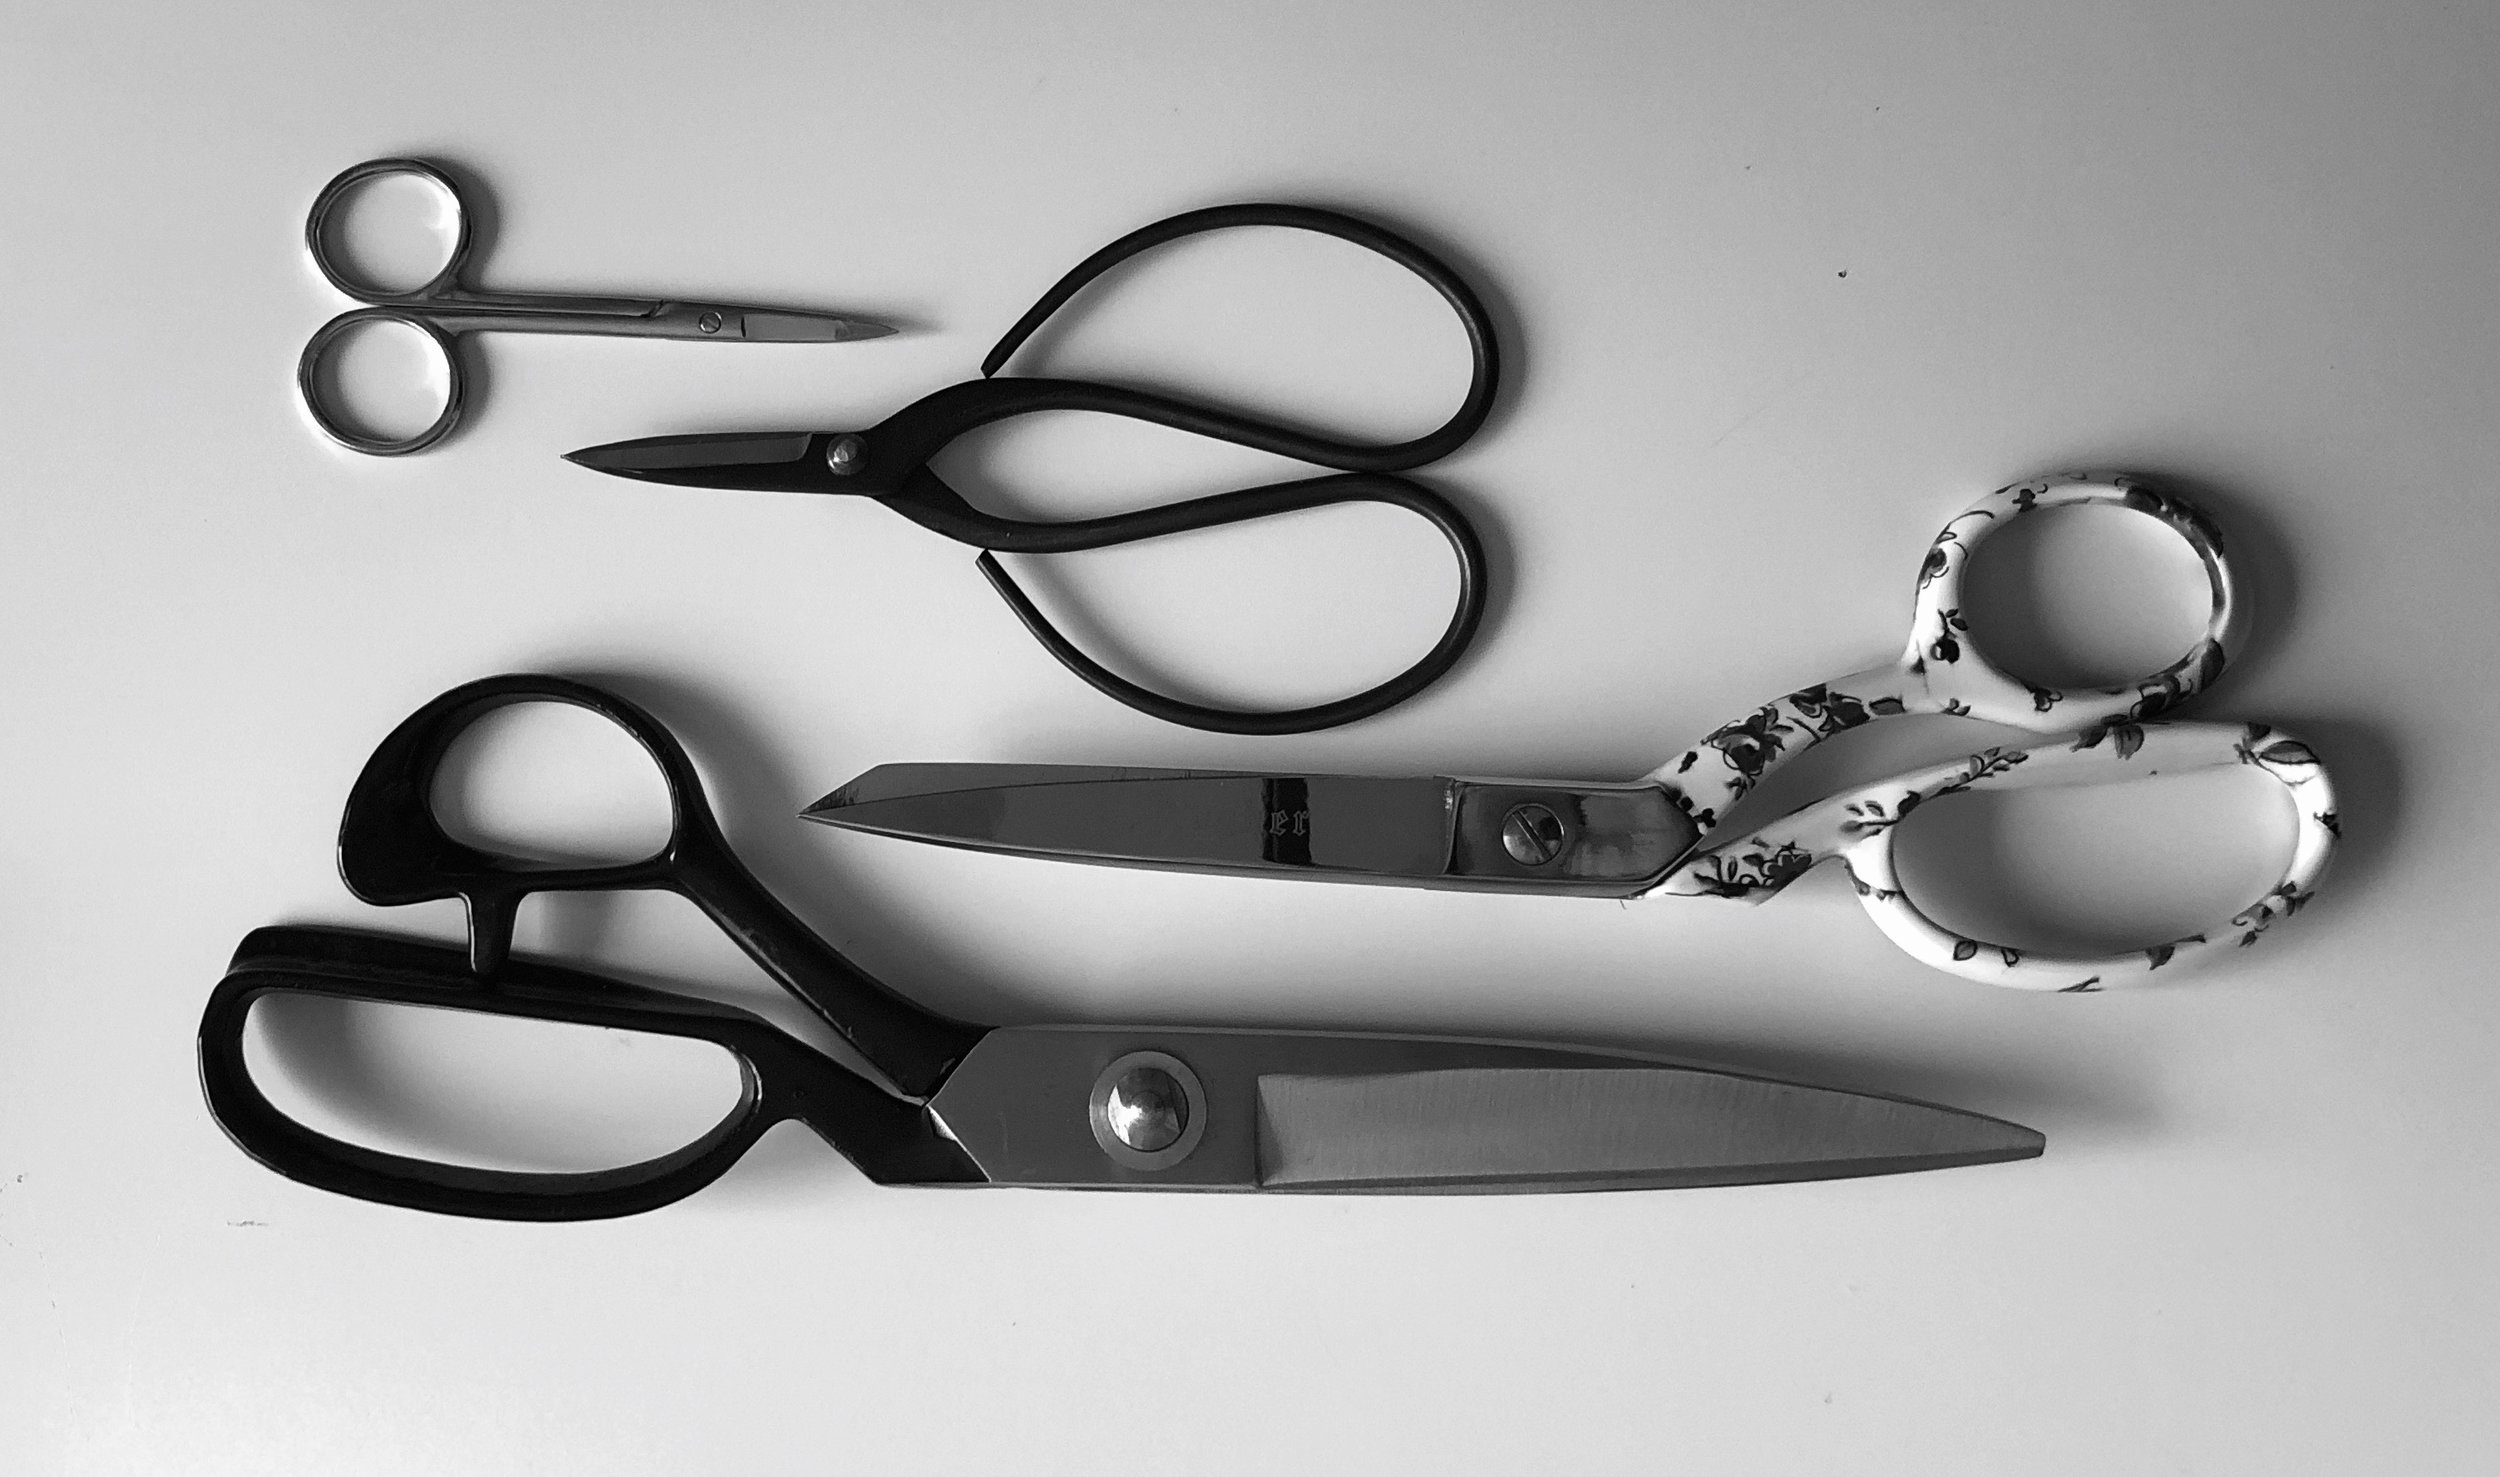 Shears and scissors, there is a difference!